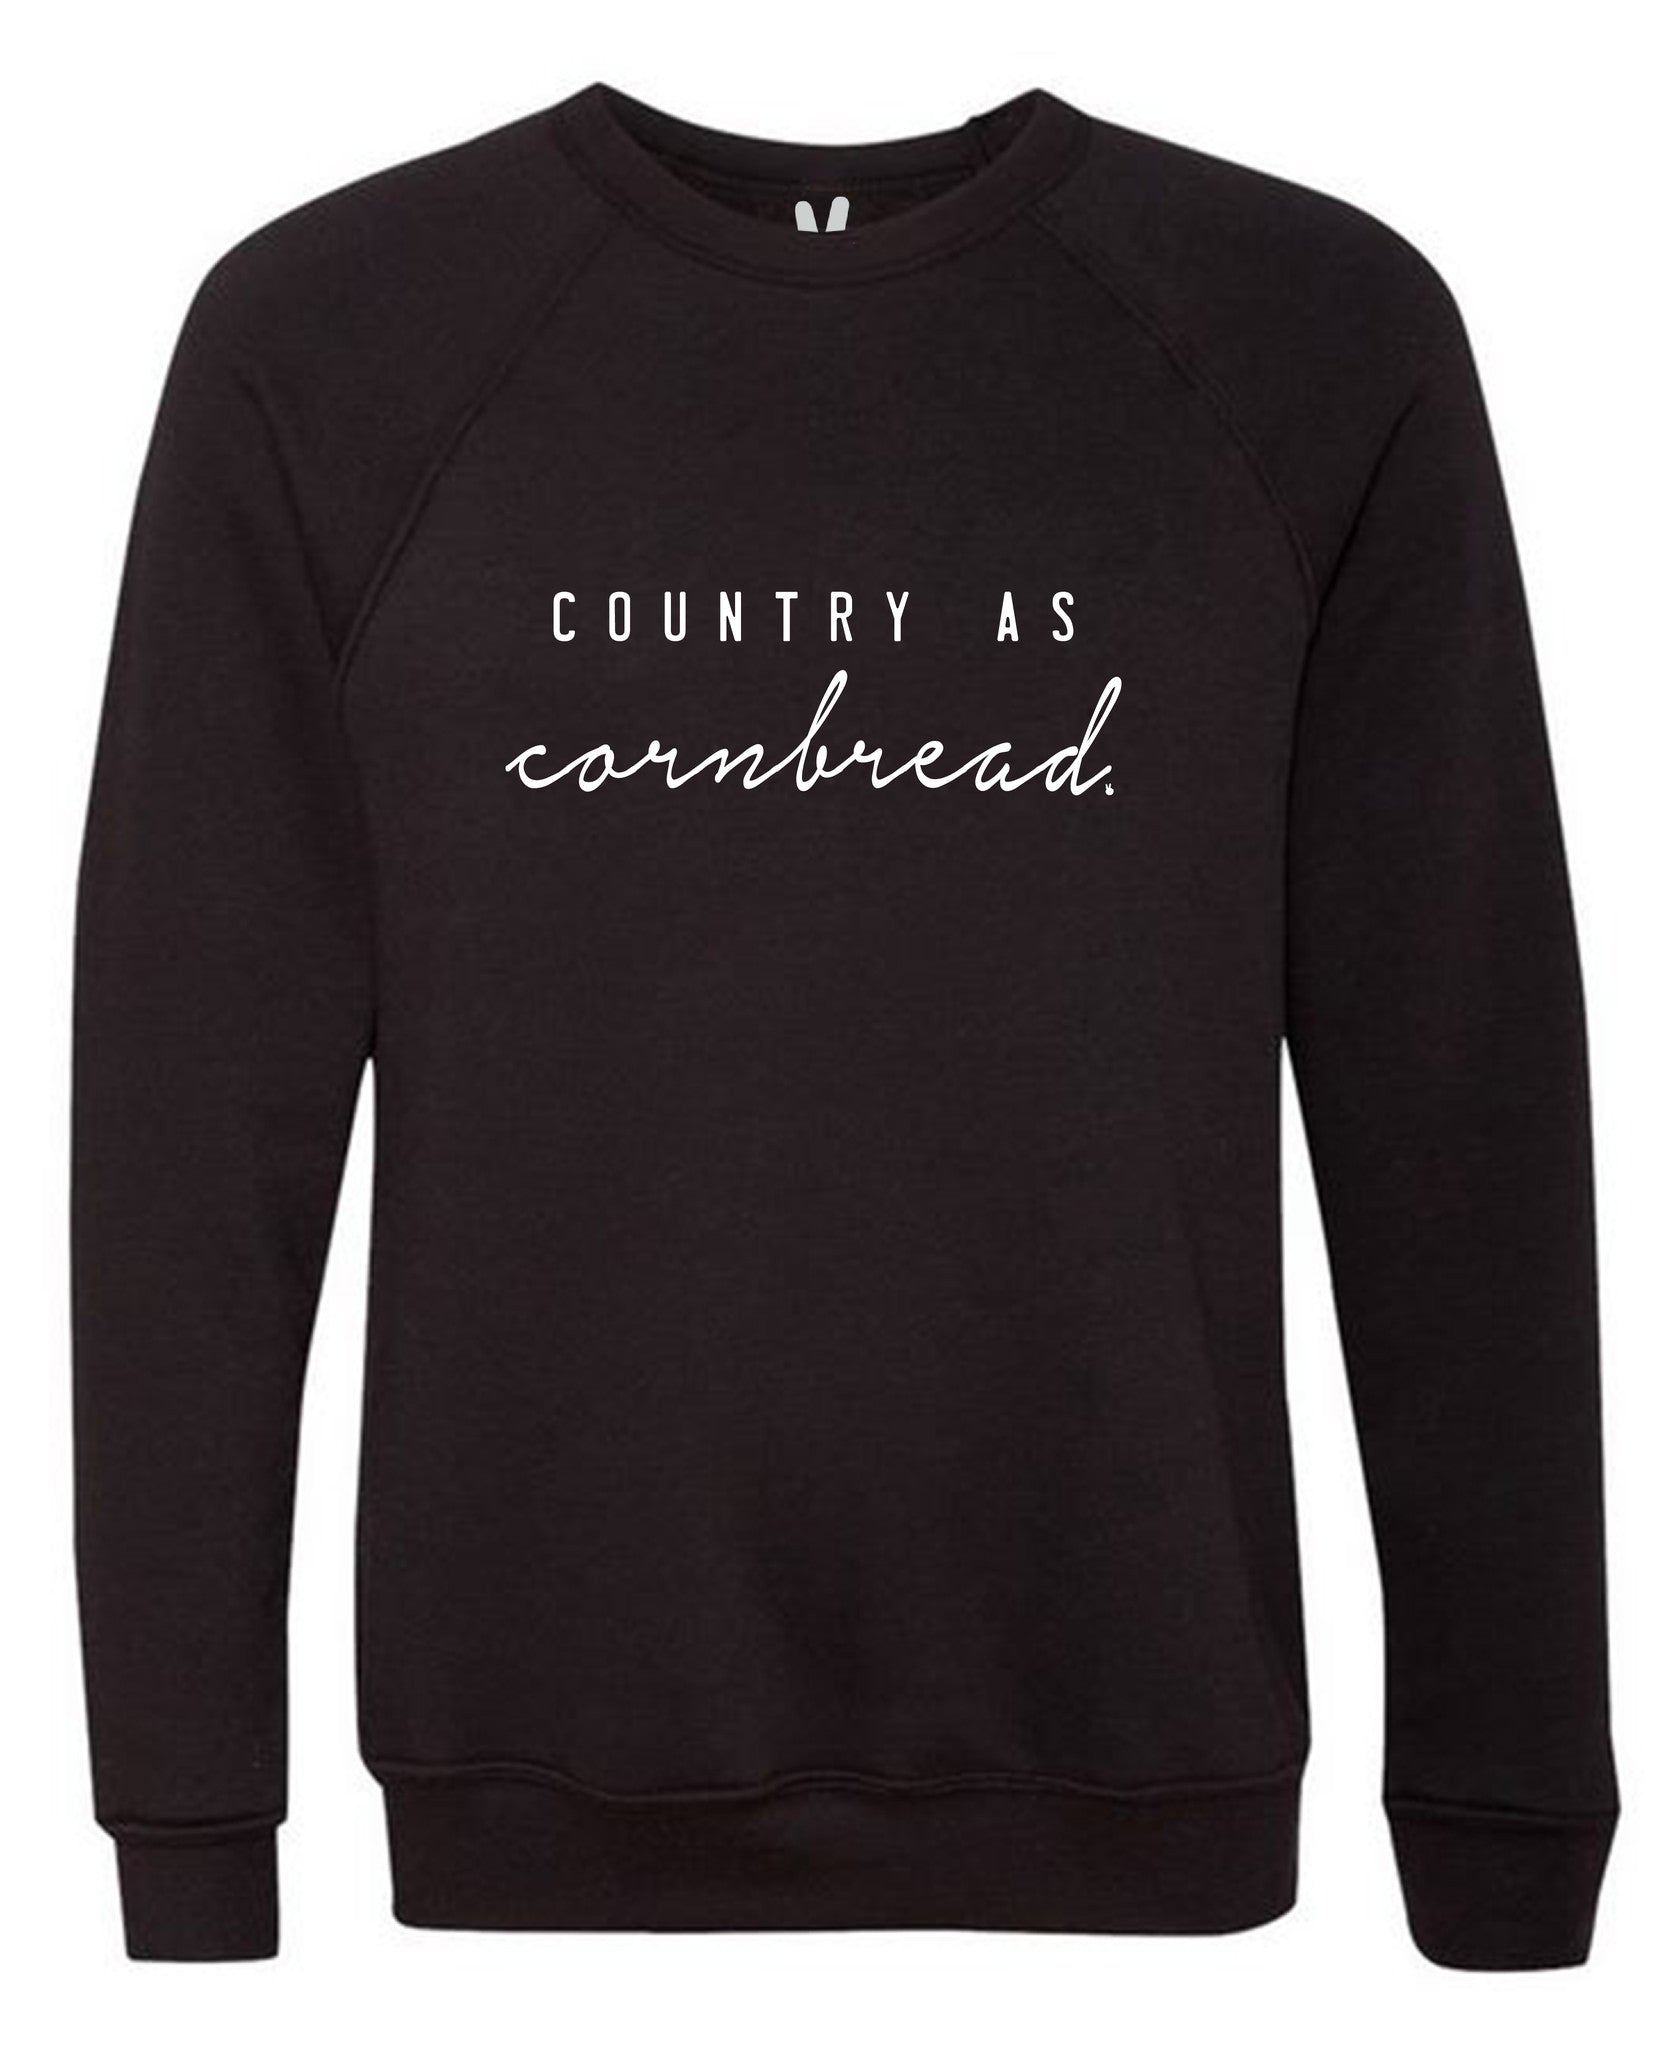 COUNTRY AS CORNBREAD Danny Sweatshirt